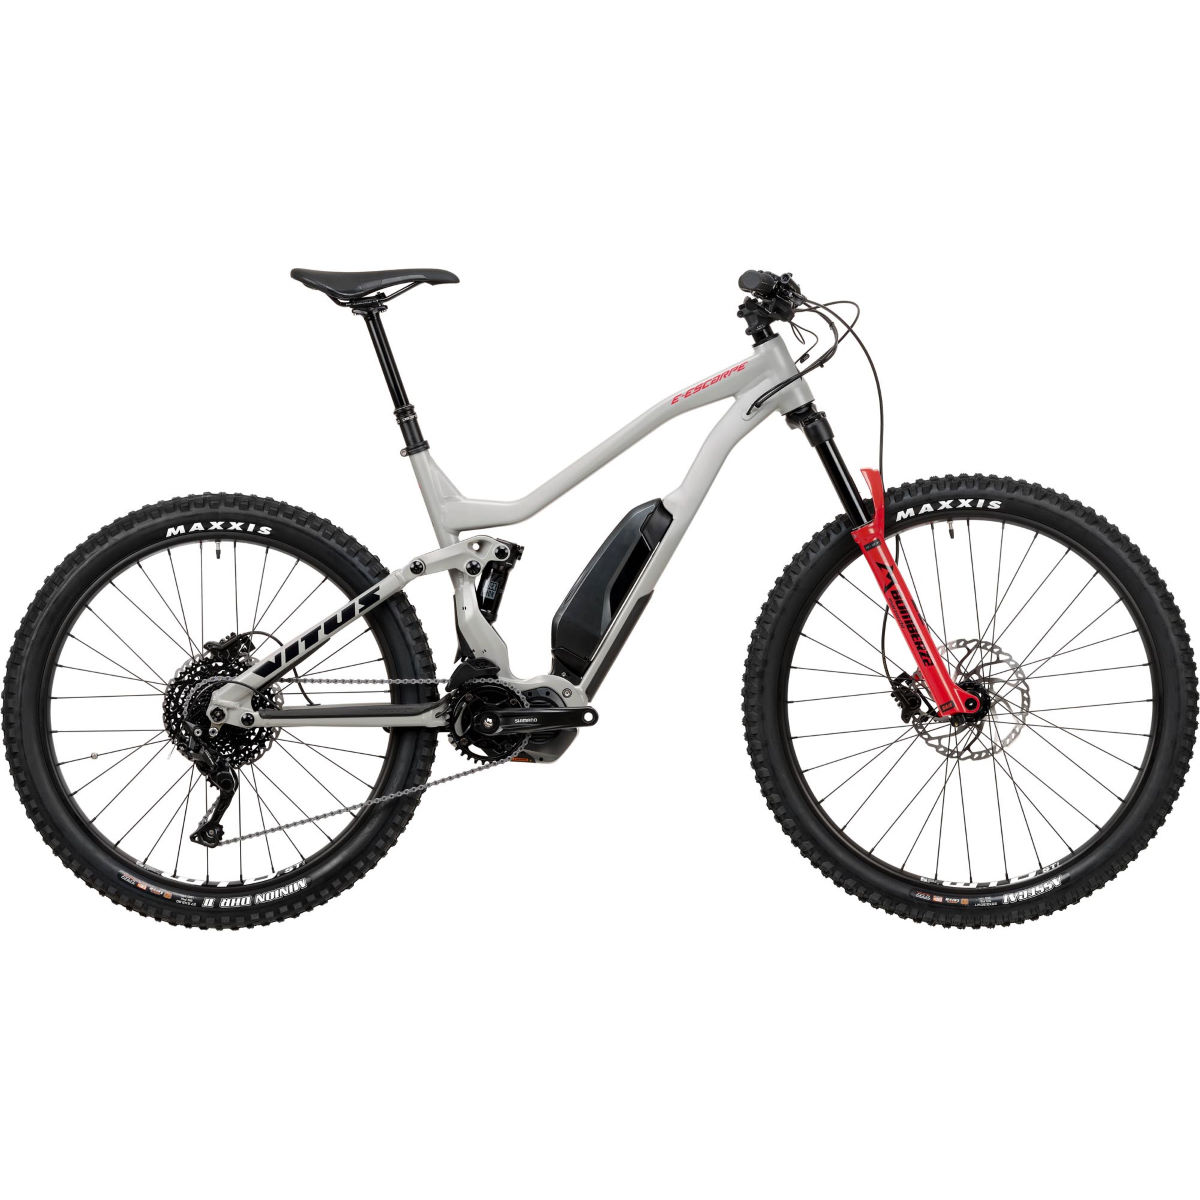 Vitus Vitus E-Escarpe E-Bike (Deore 1x10 - 2020)   Electric Mountain Bikes